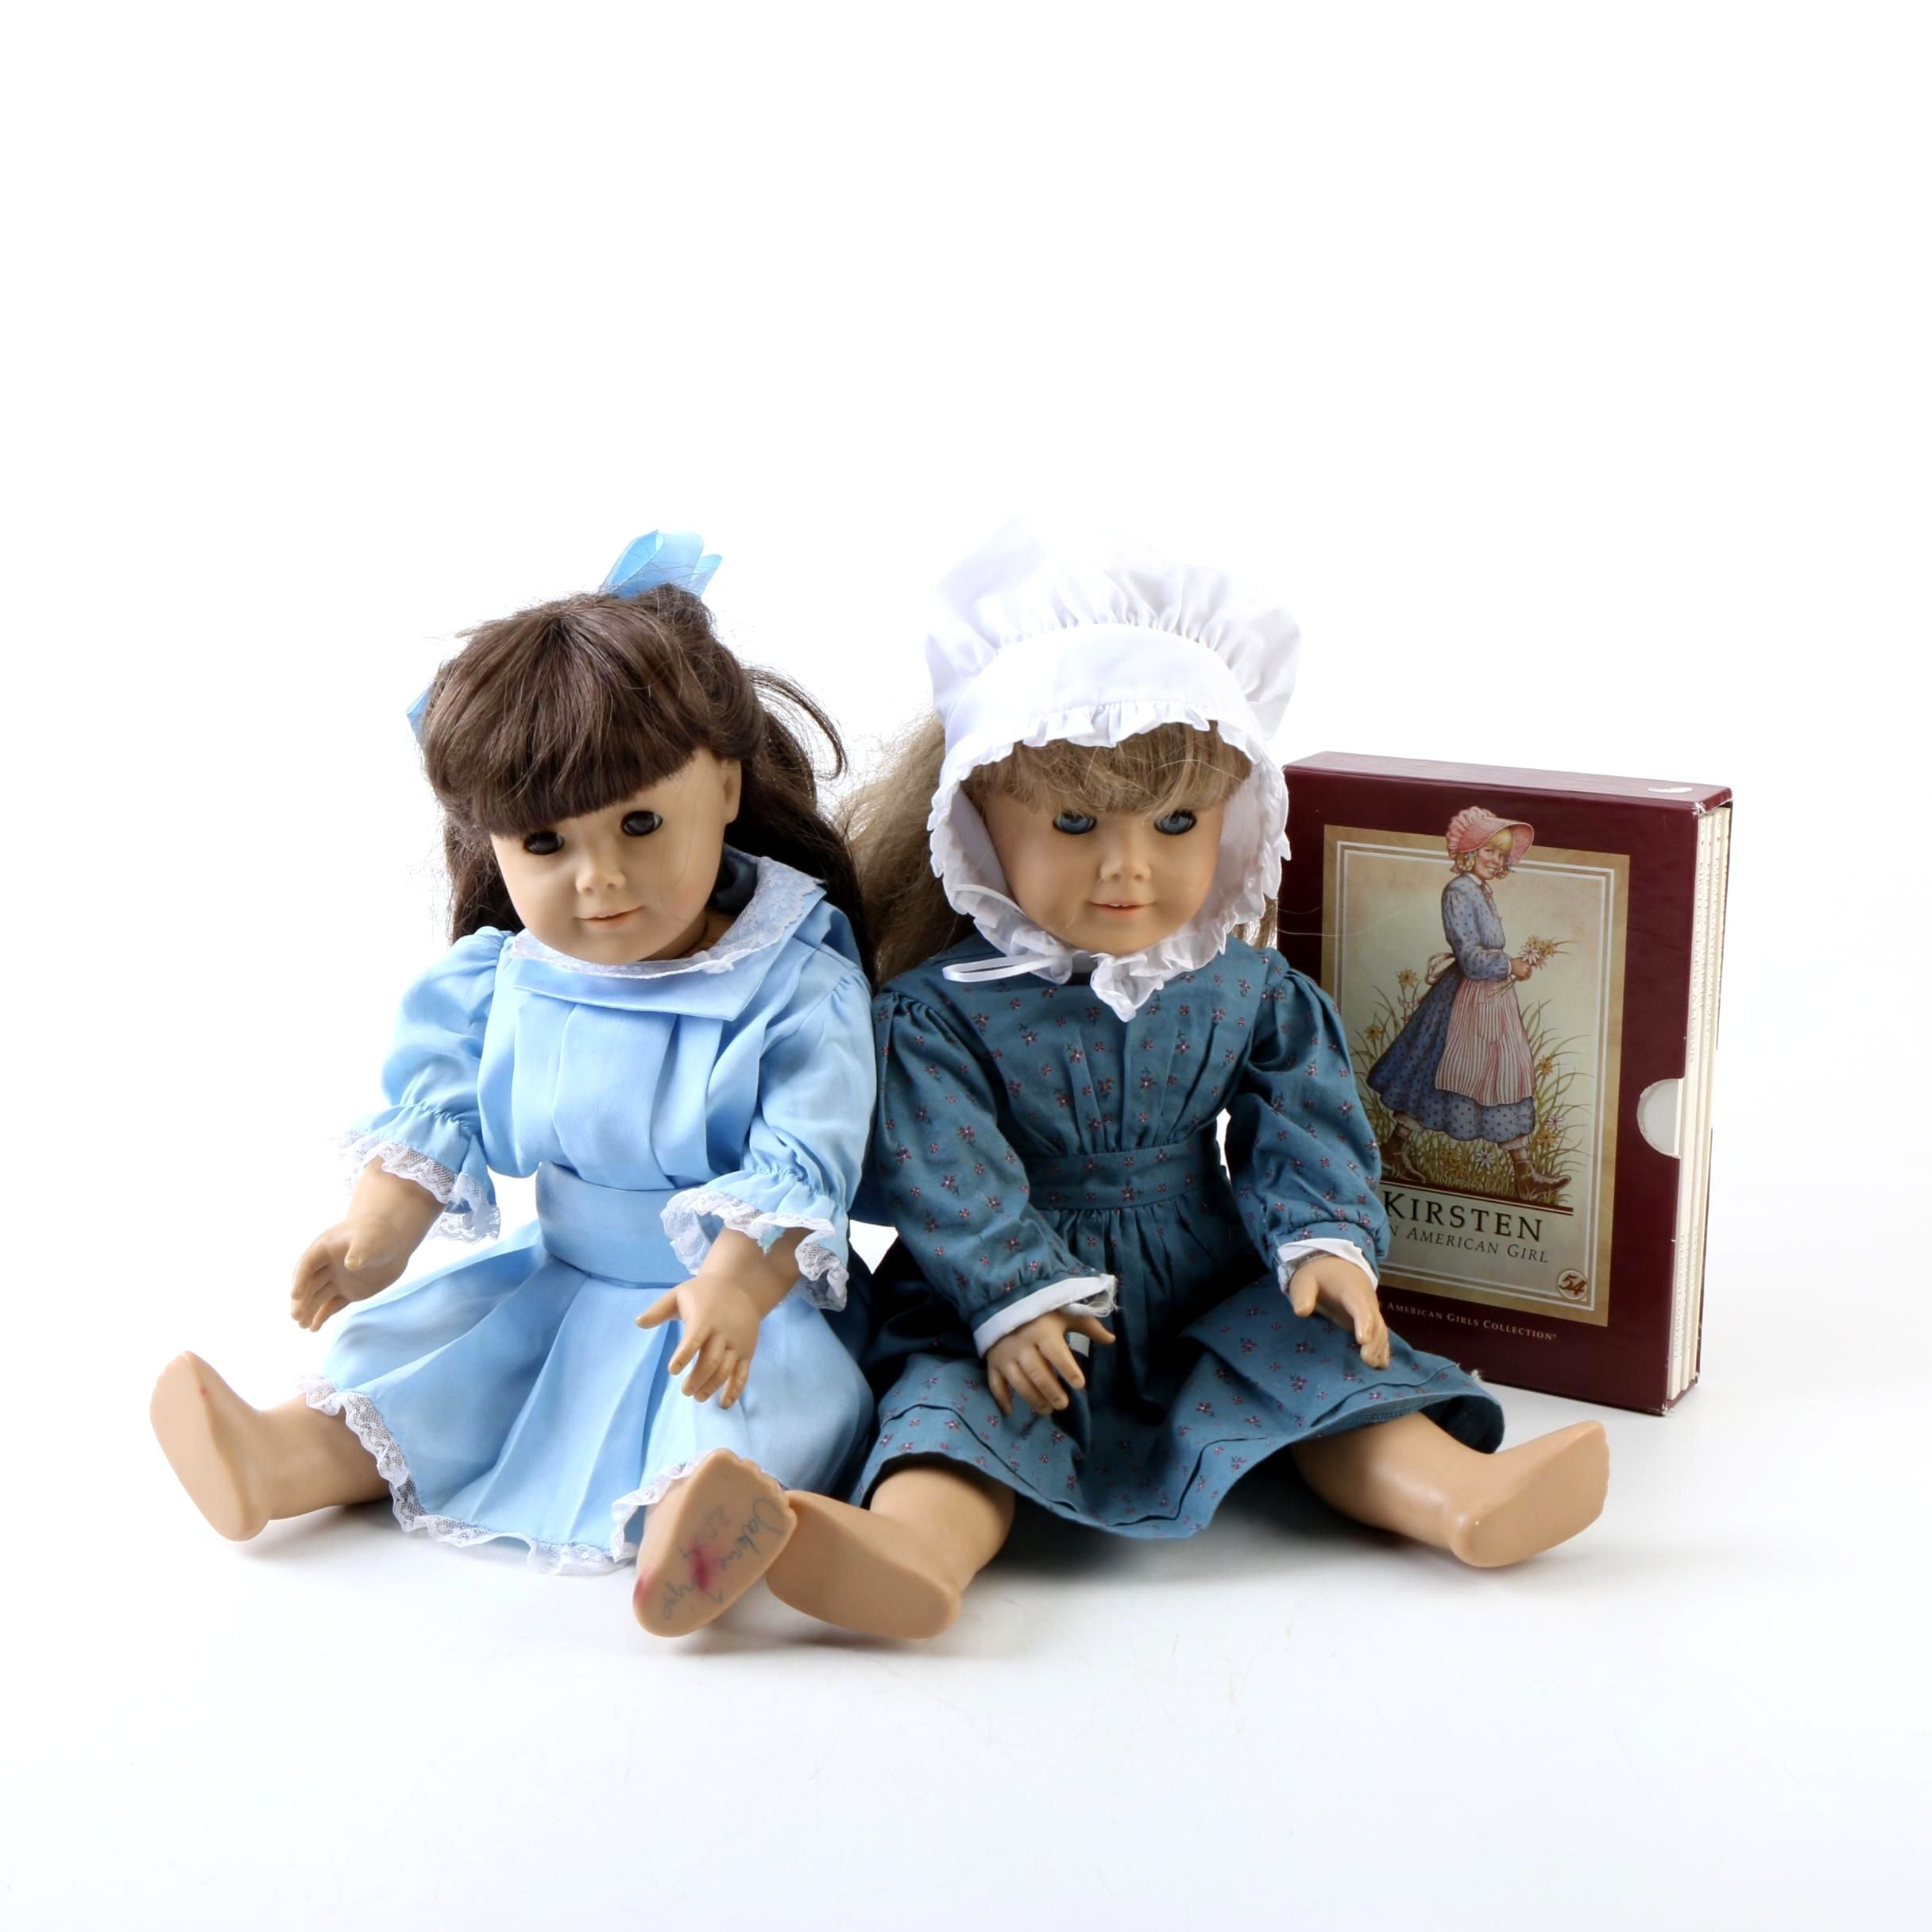 """American Girl """"Samantha"""" and """"Kirsten"""" Dolls with Boxed Set of Books"""